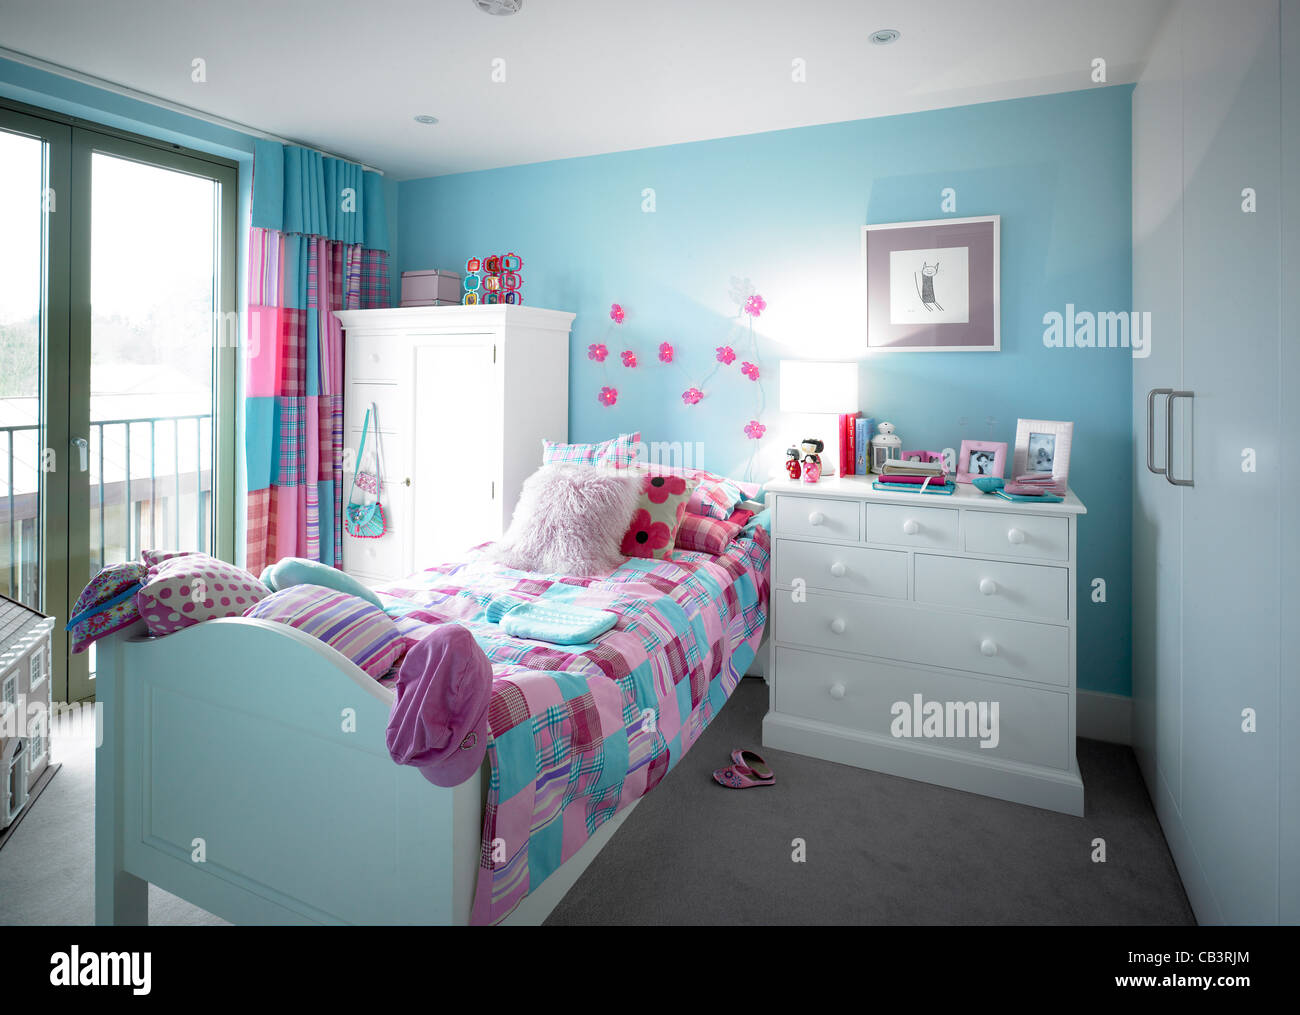 Blue And Pink Girls Bedroom   Stock Image